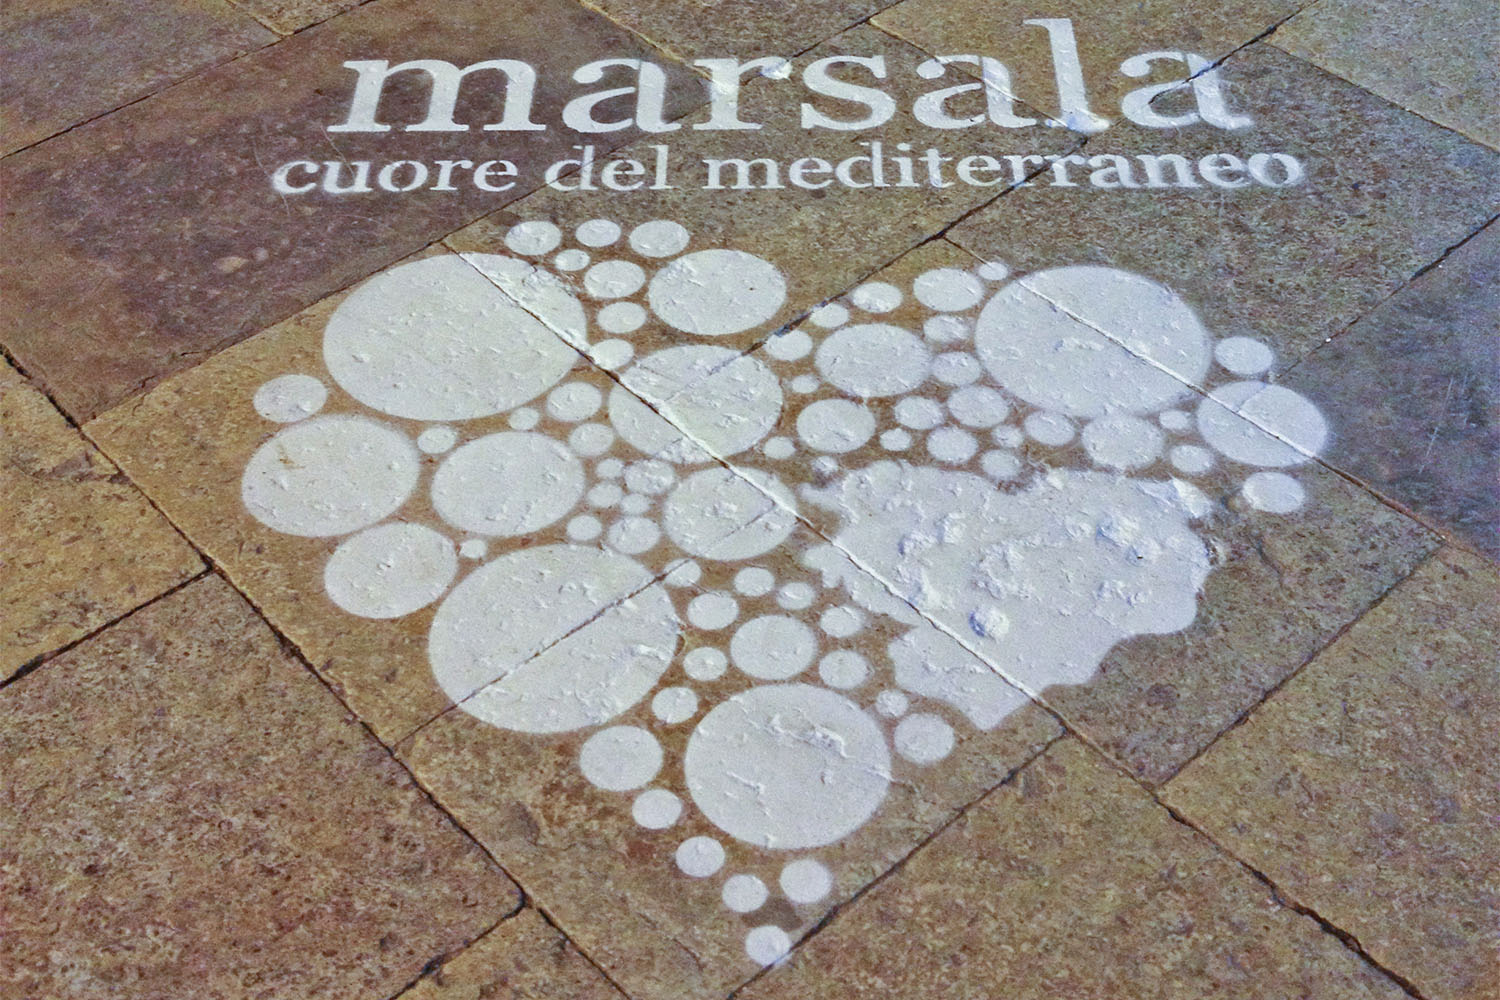 street marketing comune di marsala